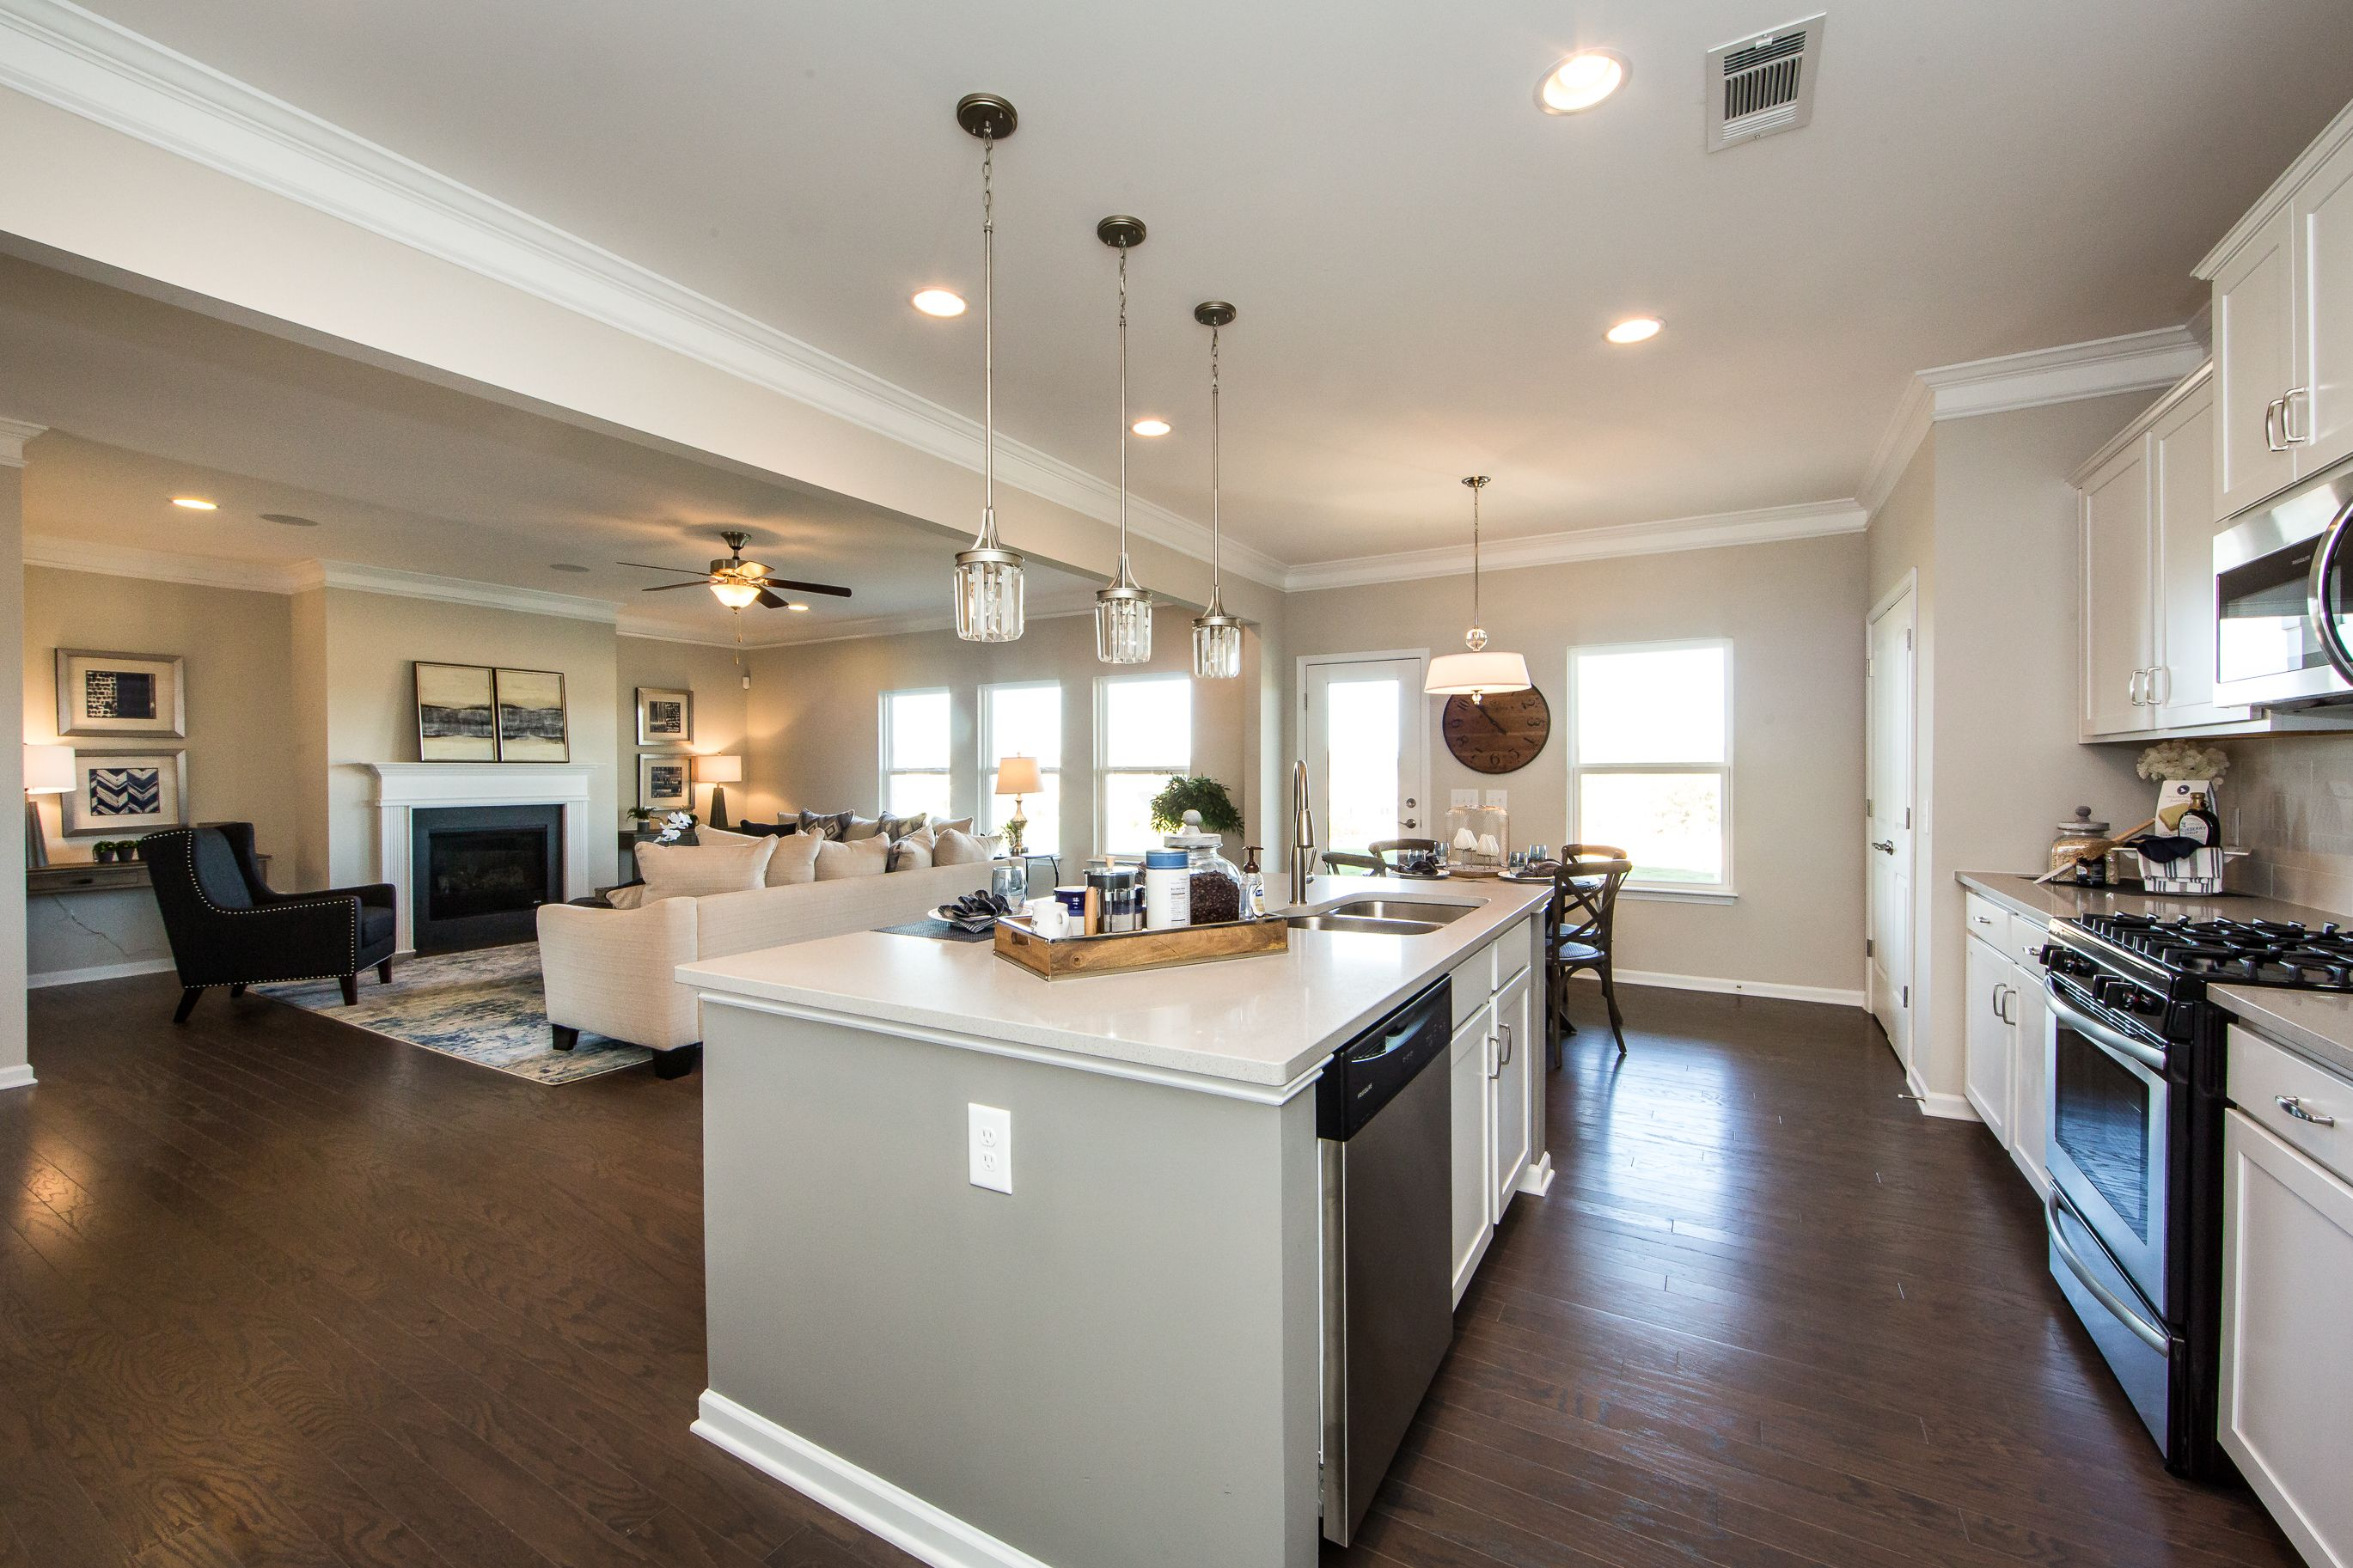 Kitchen featured in The Buffington By Smith Douglas Homes in Nashville, TN